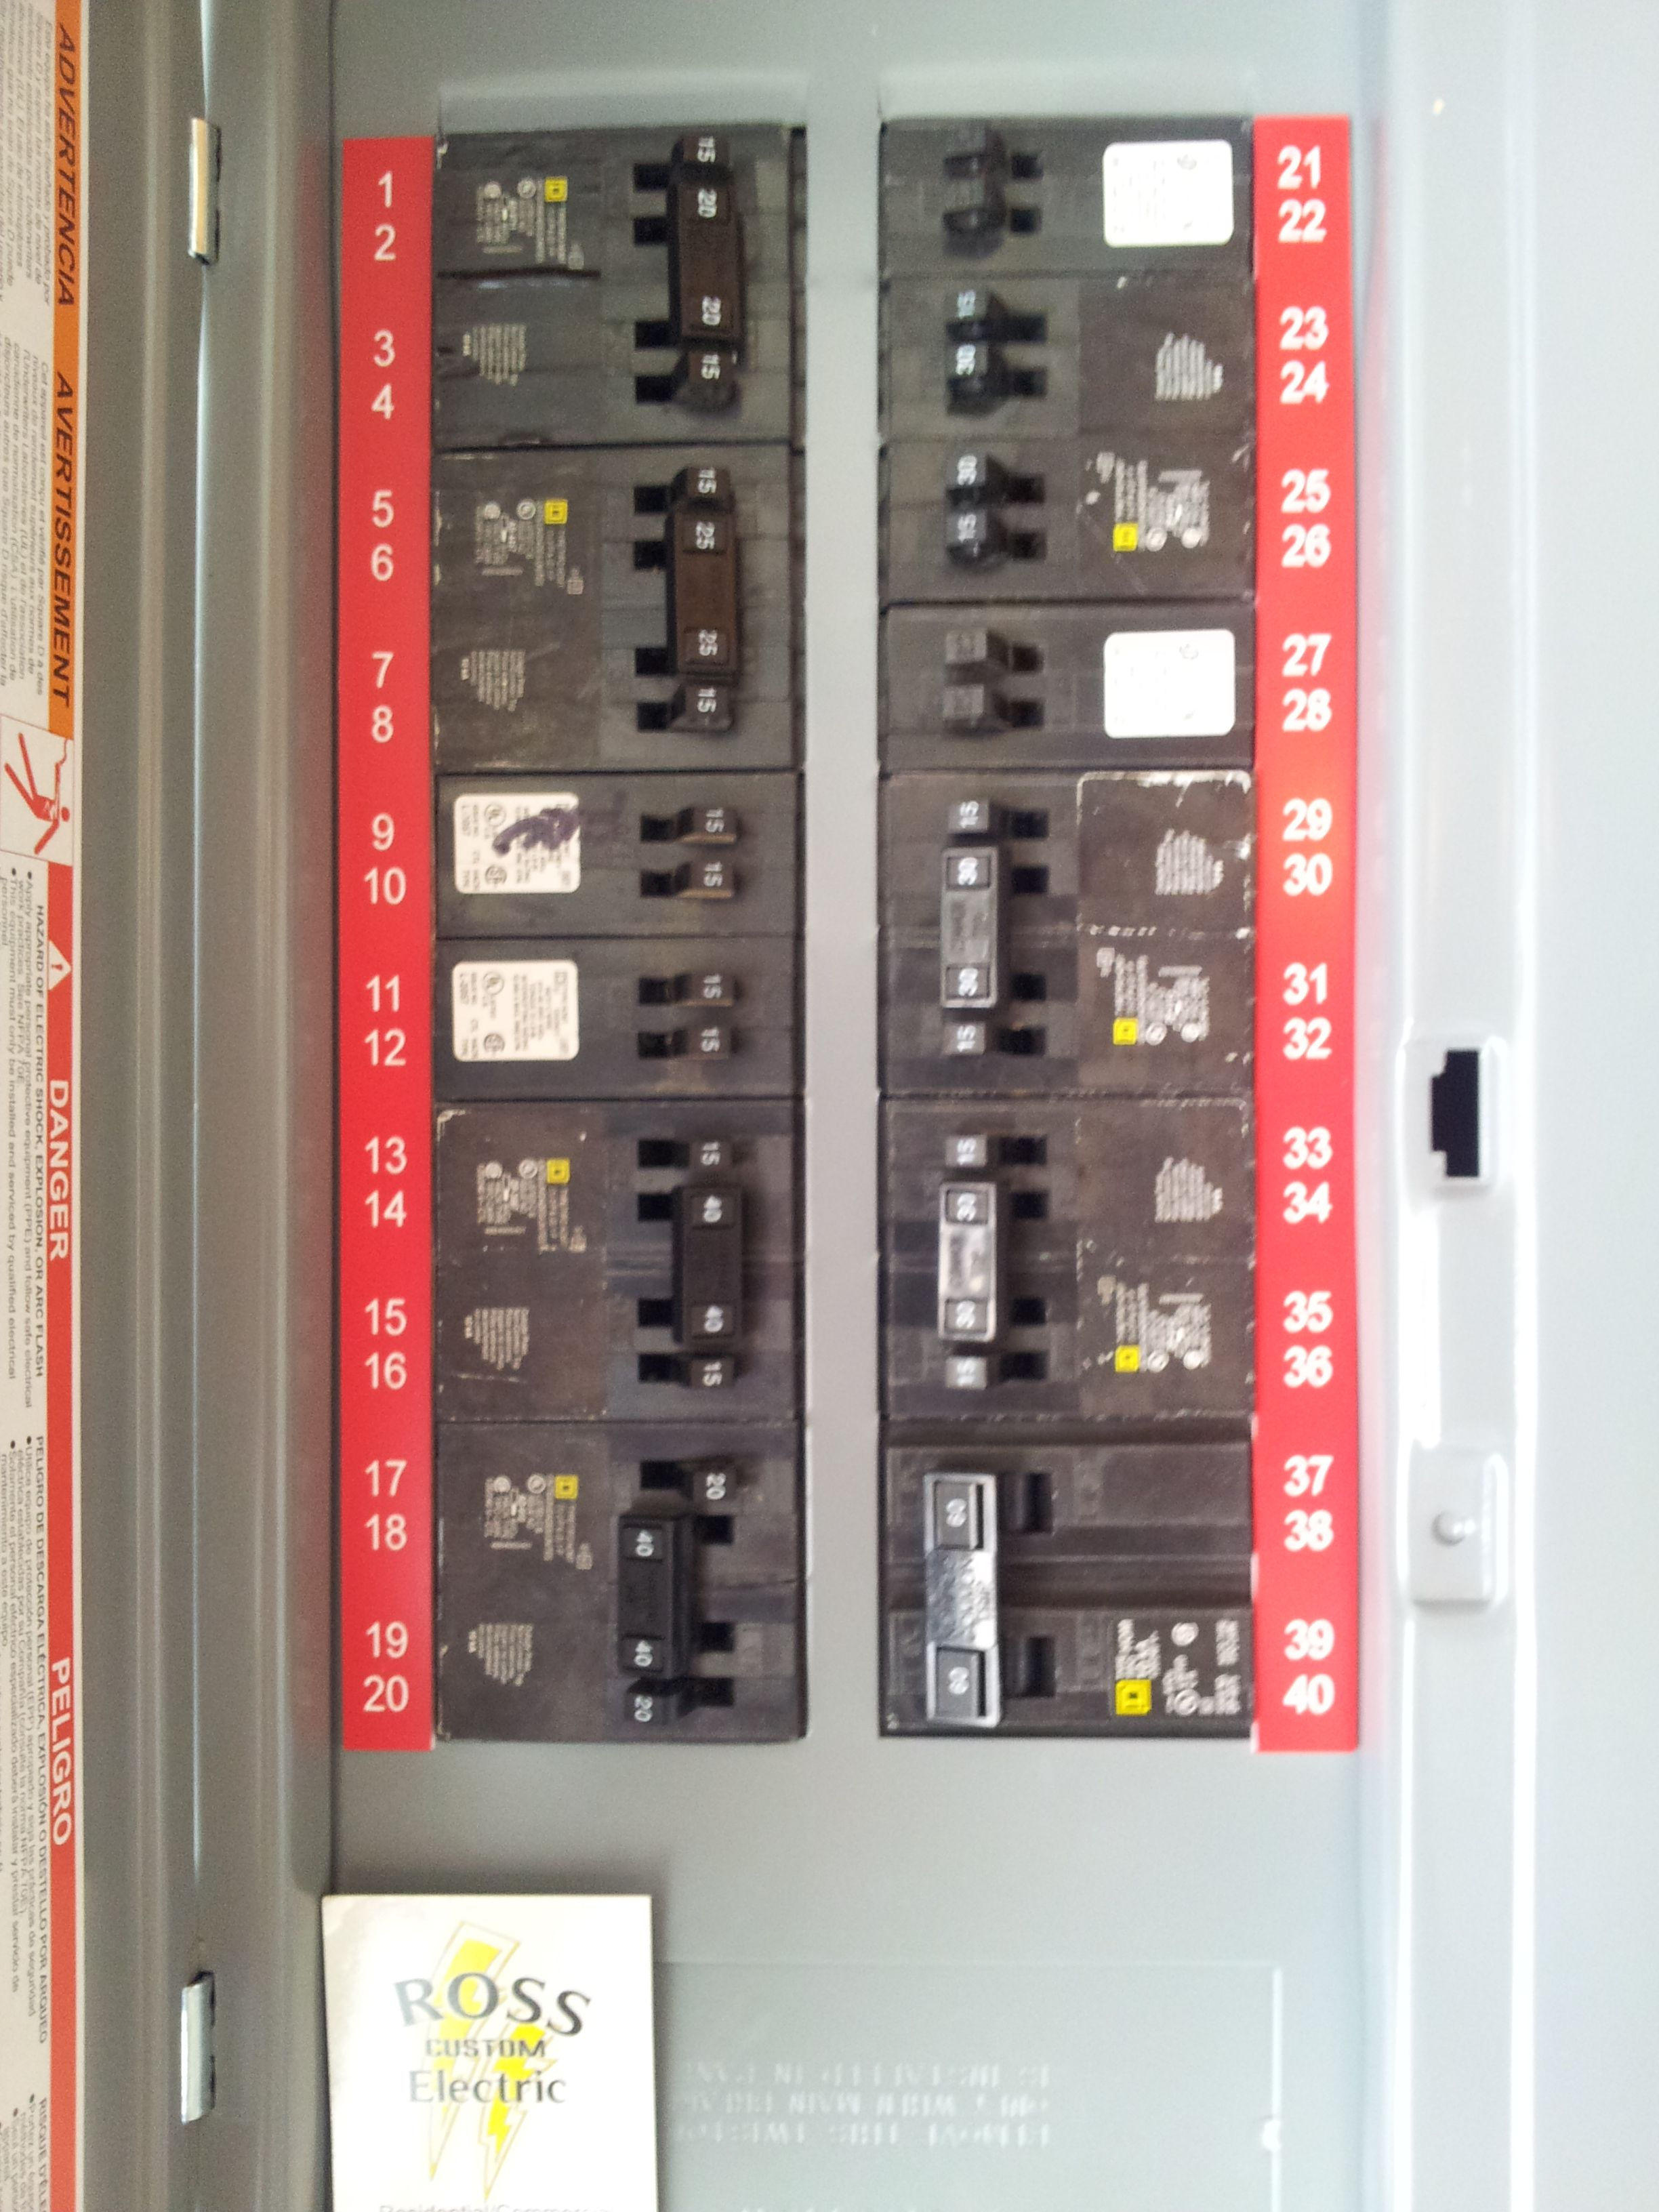 Service Sub Panel With Labeling For Back Up Power Supply This Will Electrical Subpanel Installation Provide Energy To